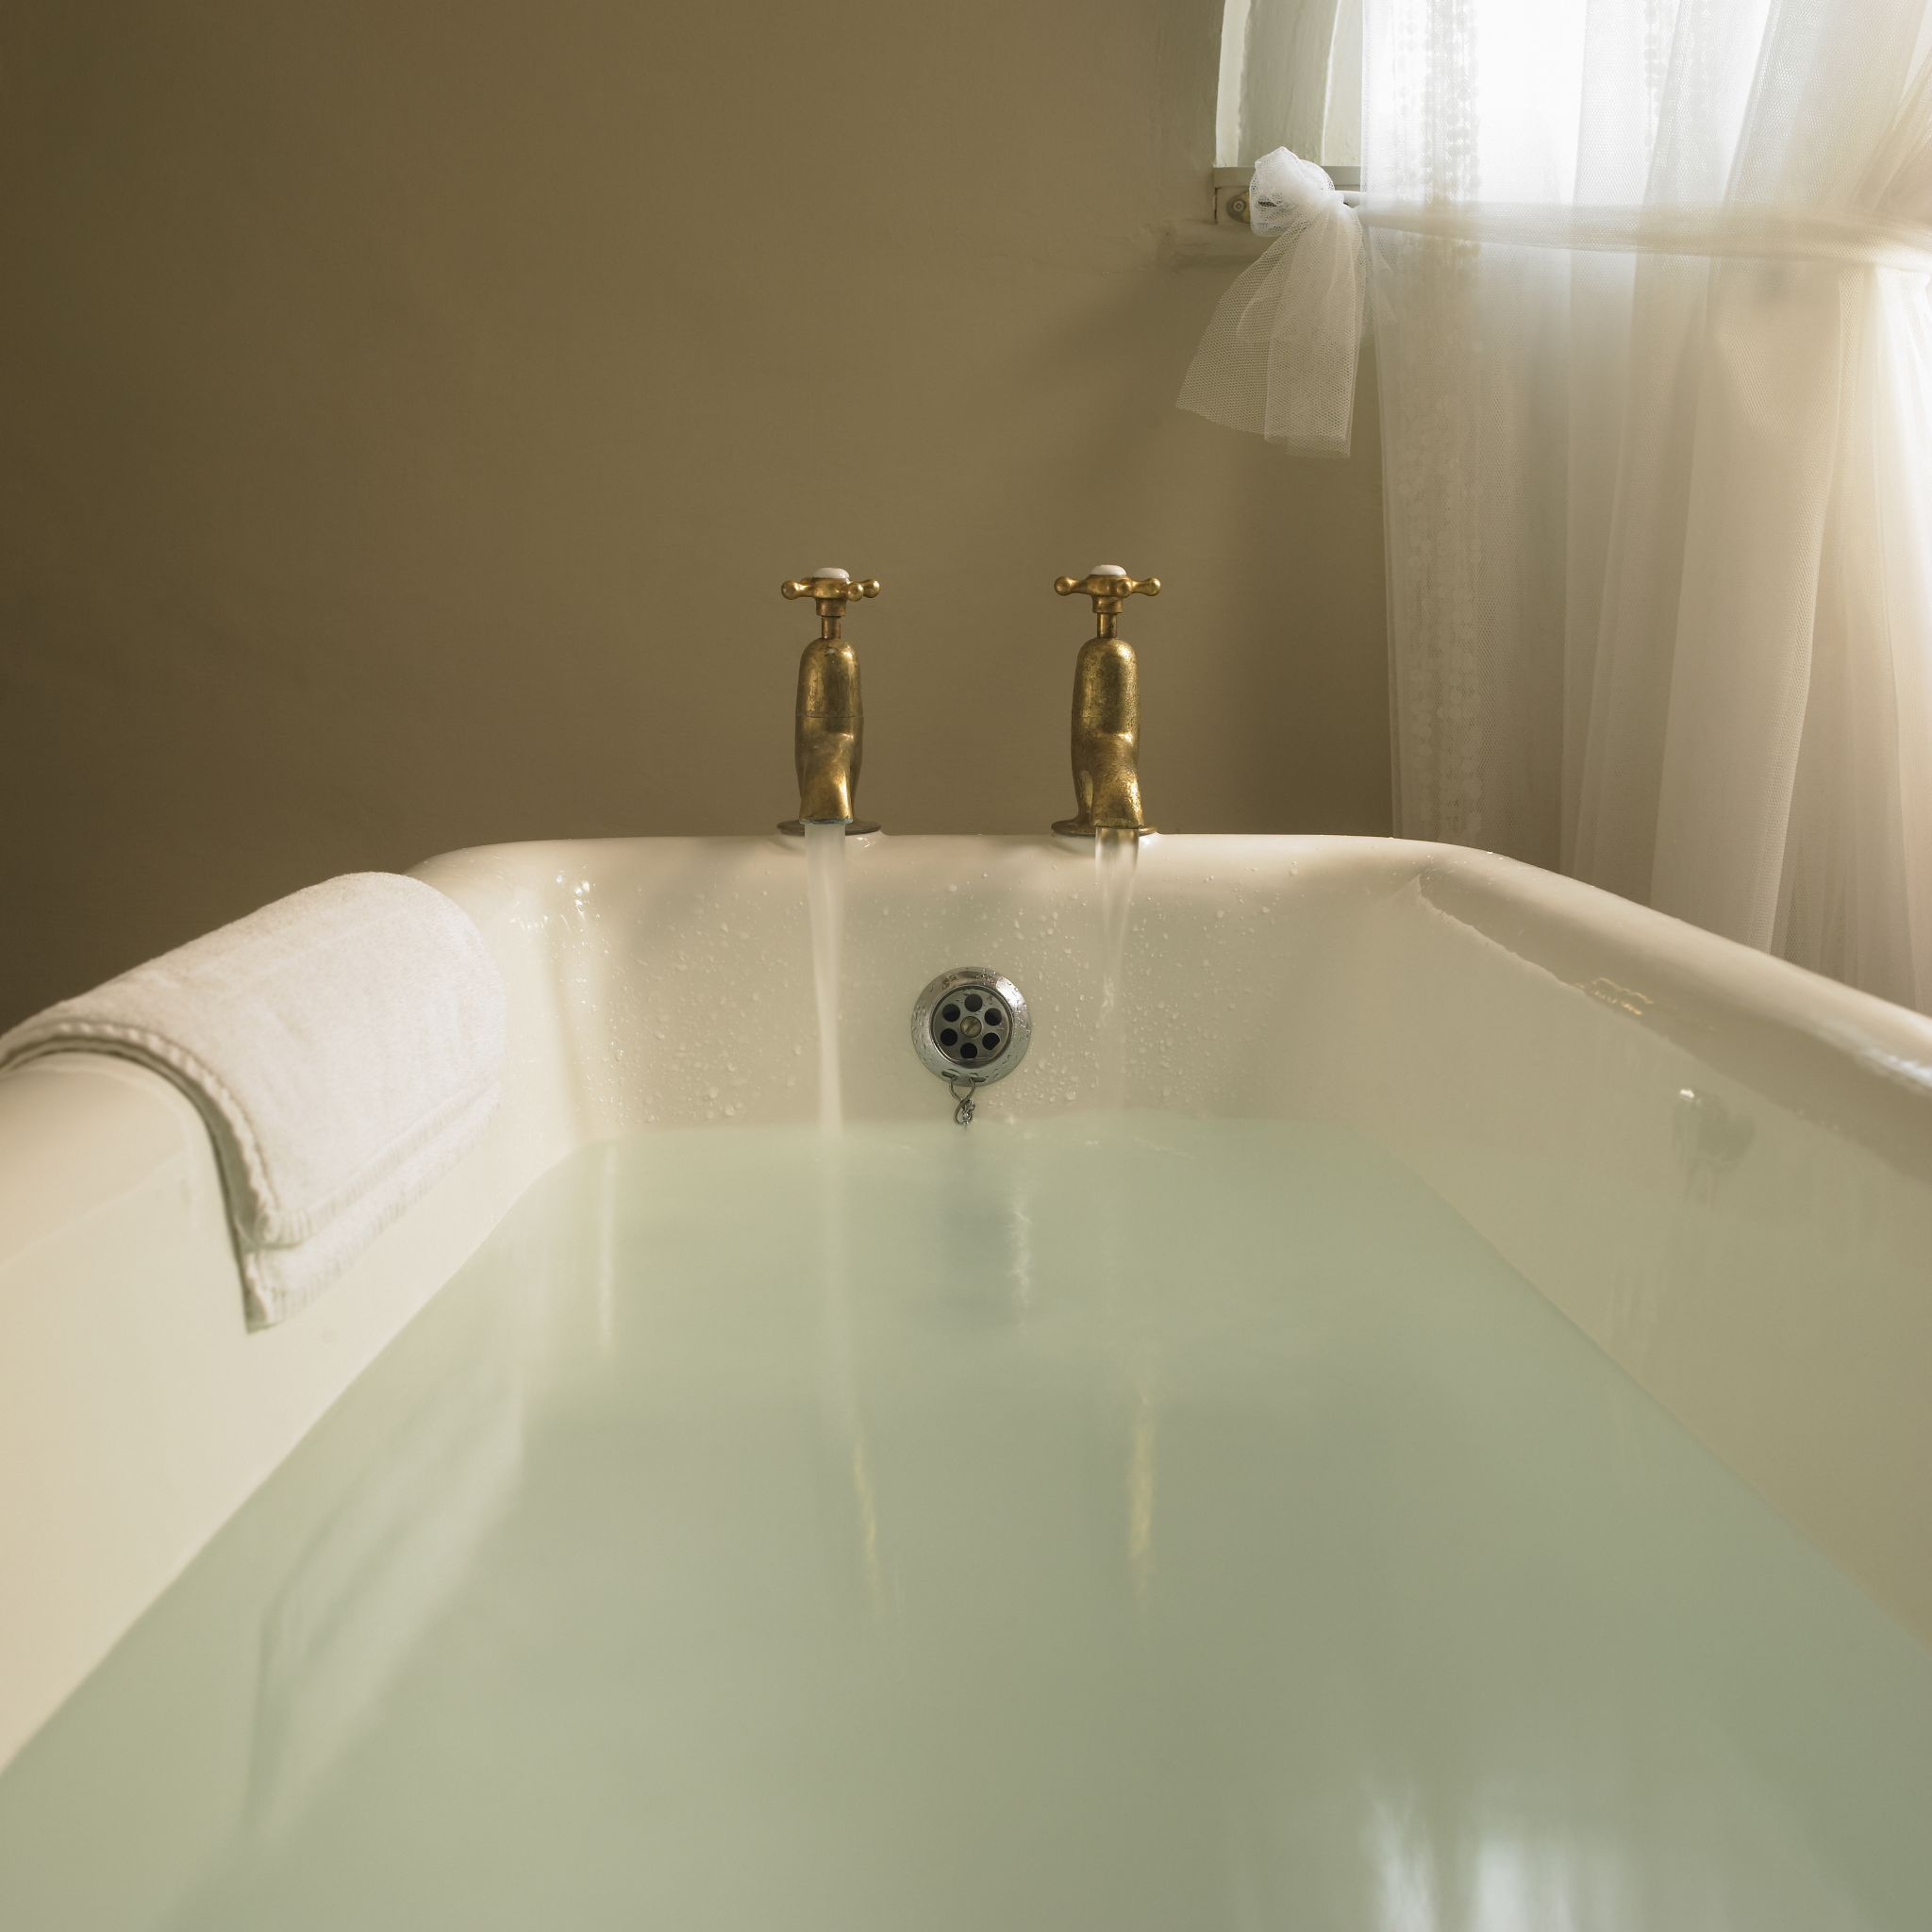 Someone drowns in a tub nearly every day in America